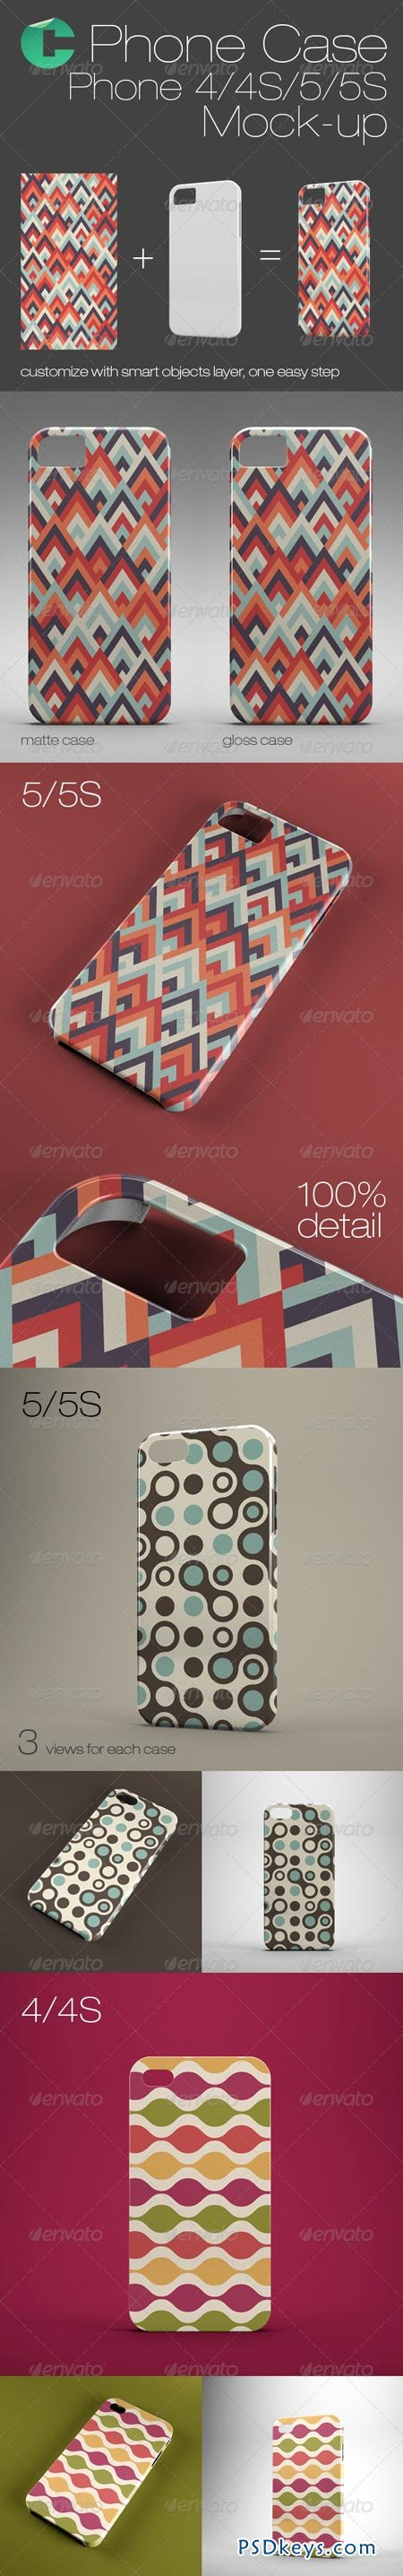 Psd Sources Object Phone Case Mock Up Graphicriver